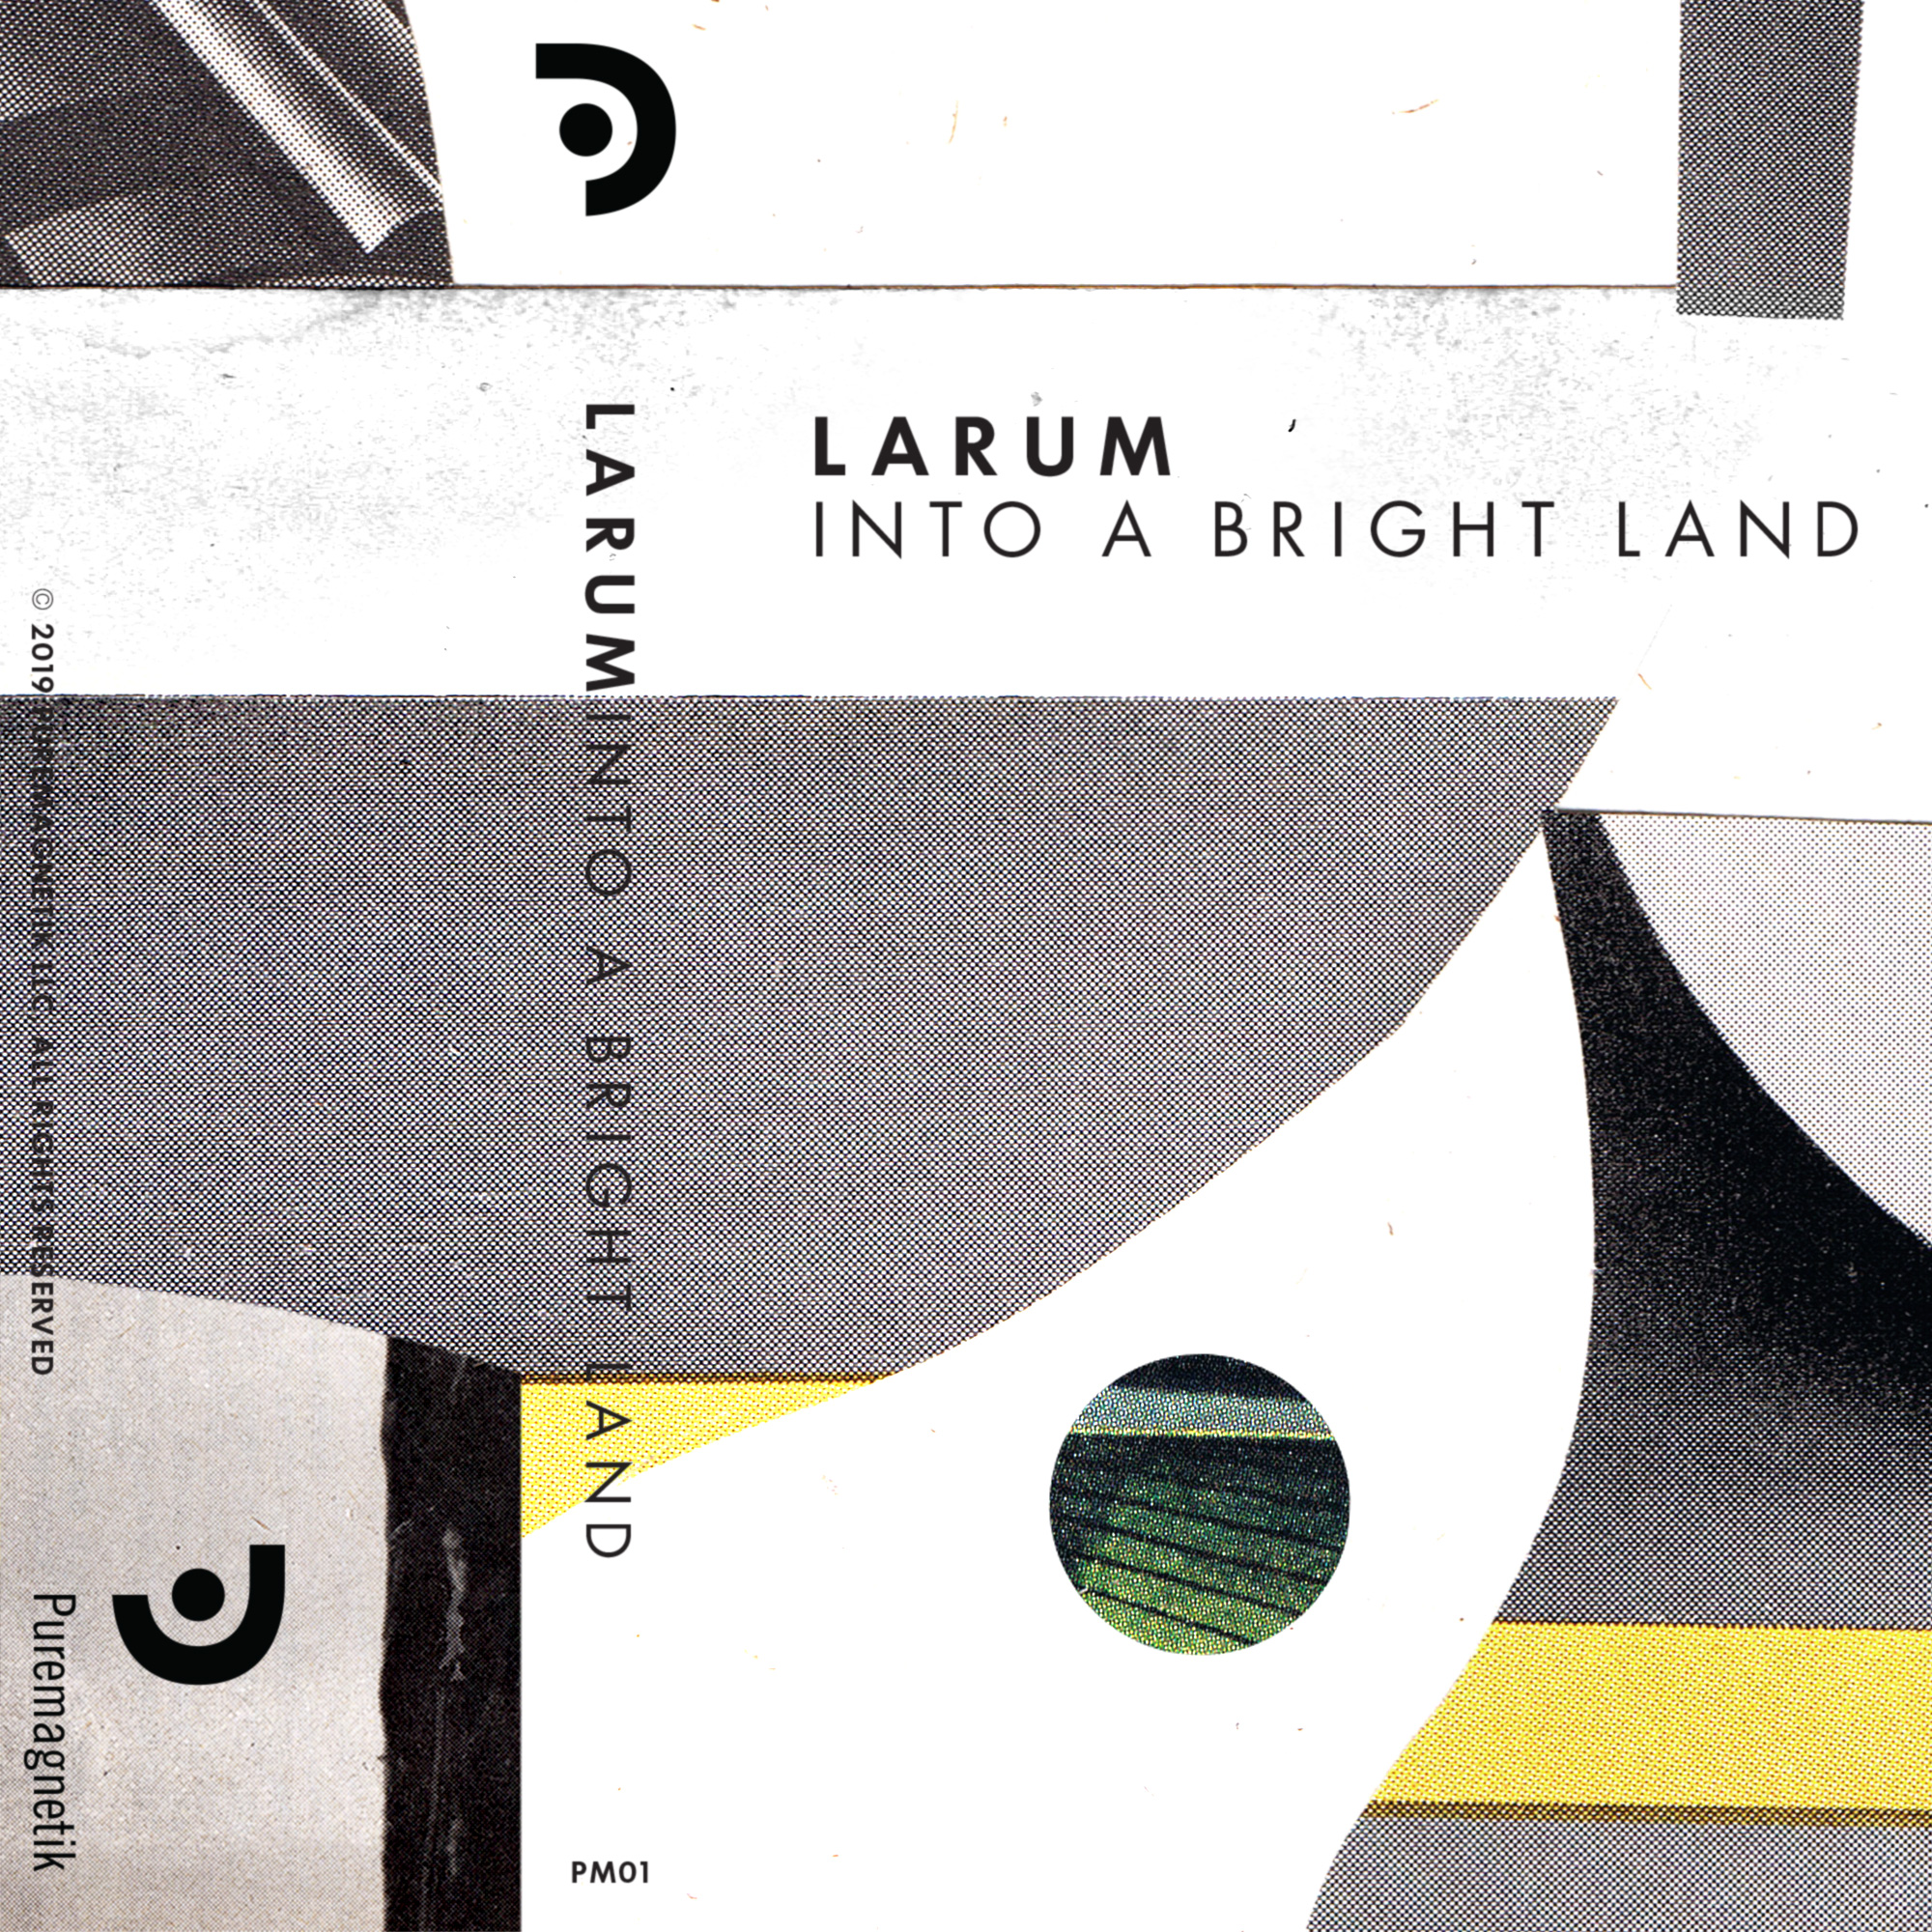 "Larum, Into a Bright Land, 2019   Best new ambient on Bandcamp: April 2019    ""Into a Bright Land is in turns crystalline and delicate, warm and lush as a thick blanket.""  -Peter Kirn, Create Digital Music   ""...many elements appear that make evident Frank's willingness to push his sound into unexpected places. For me, that makes Into a Bright Land all the more profound an experience.""  -Ari Delaney, Bandcamp   Read More"